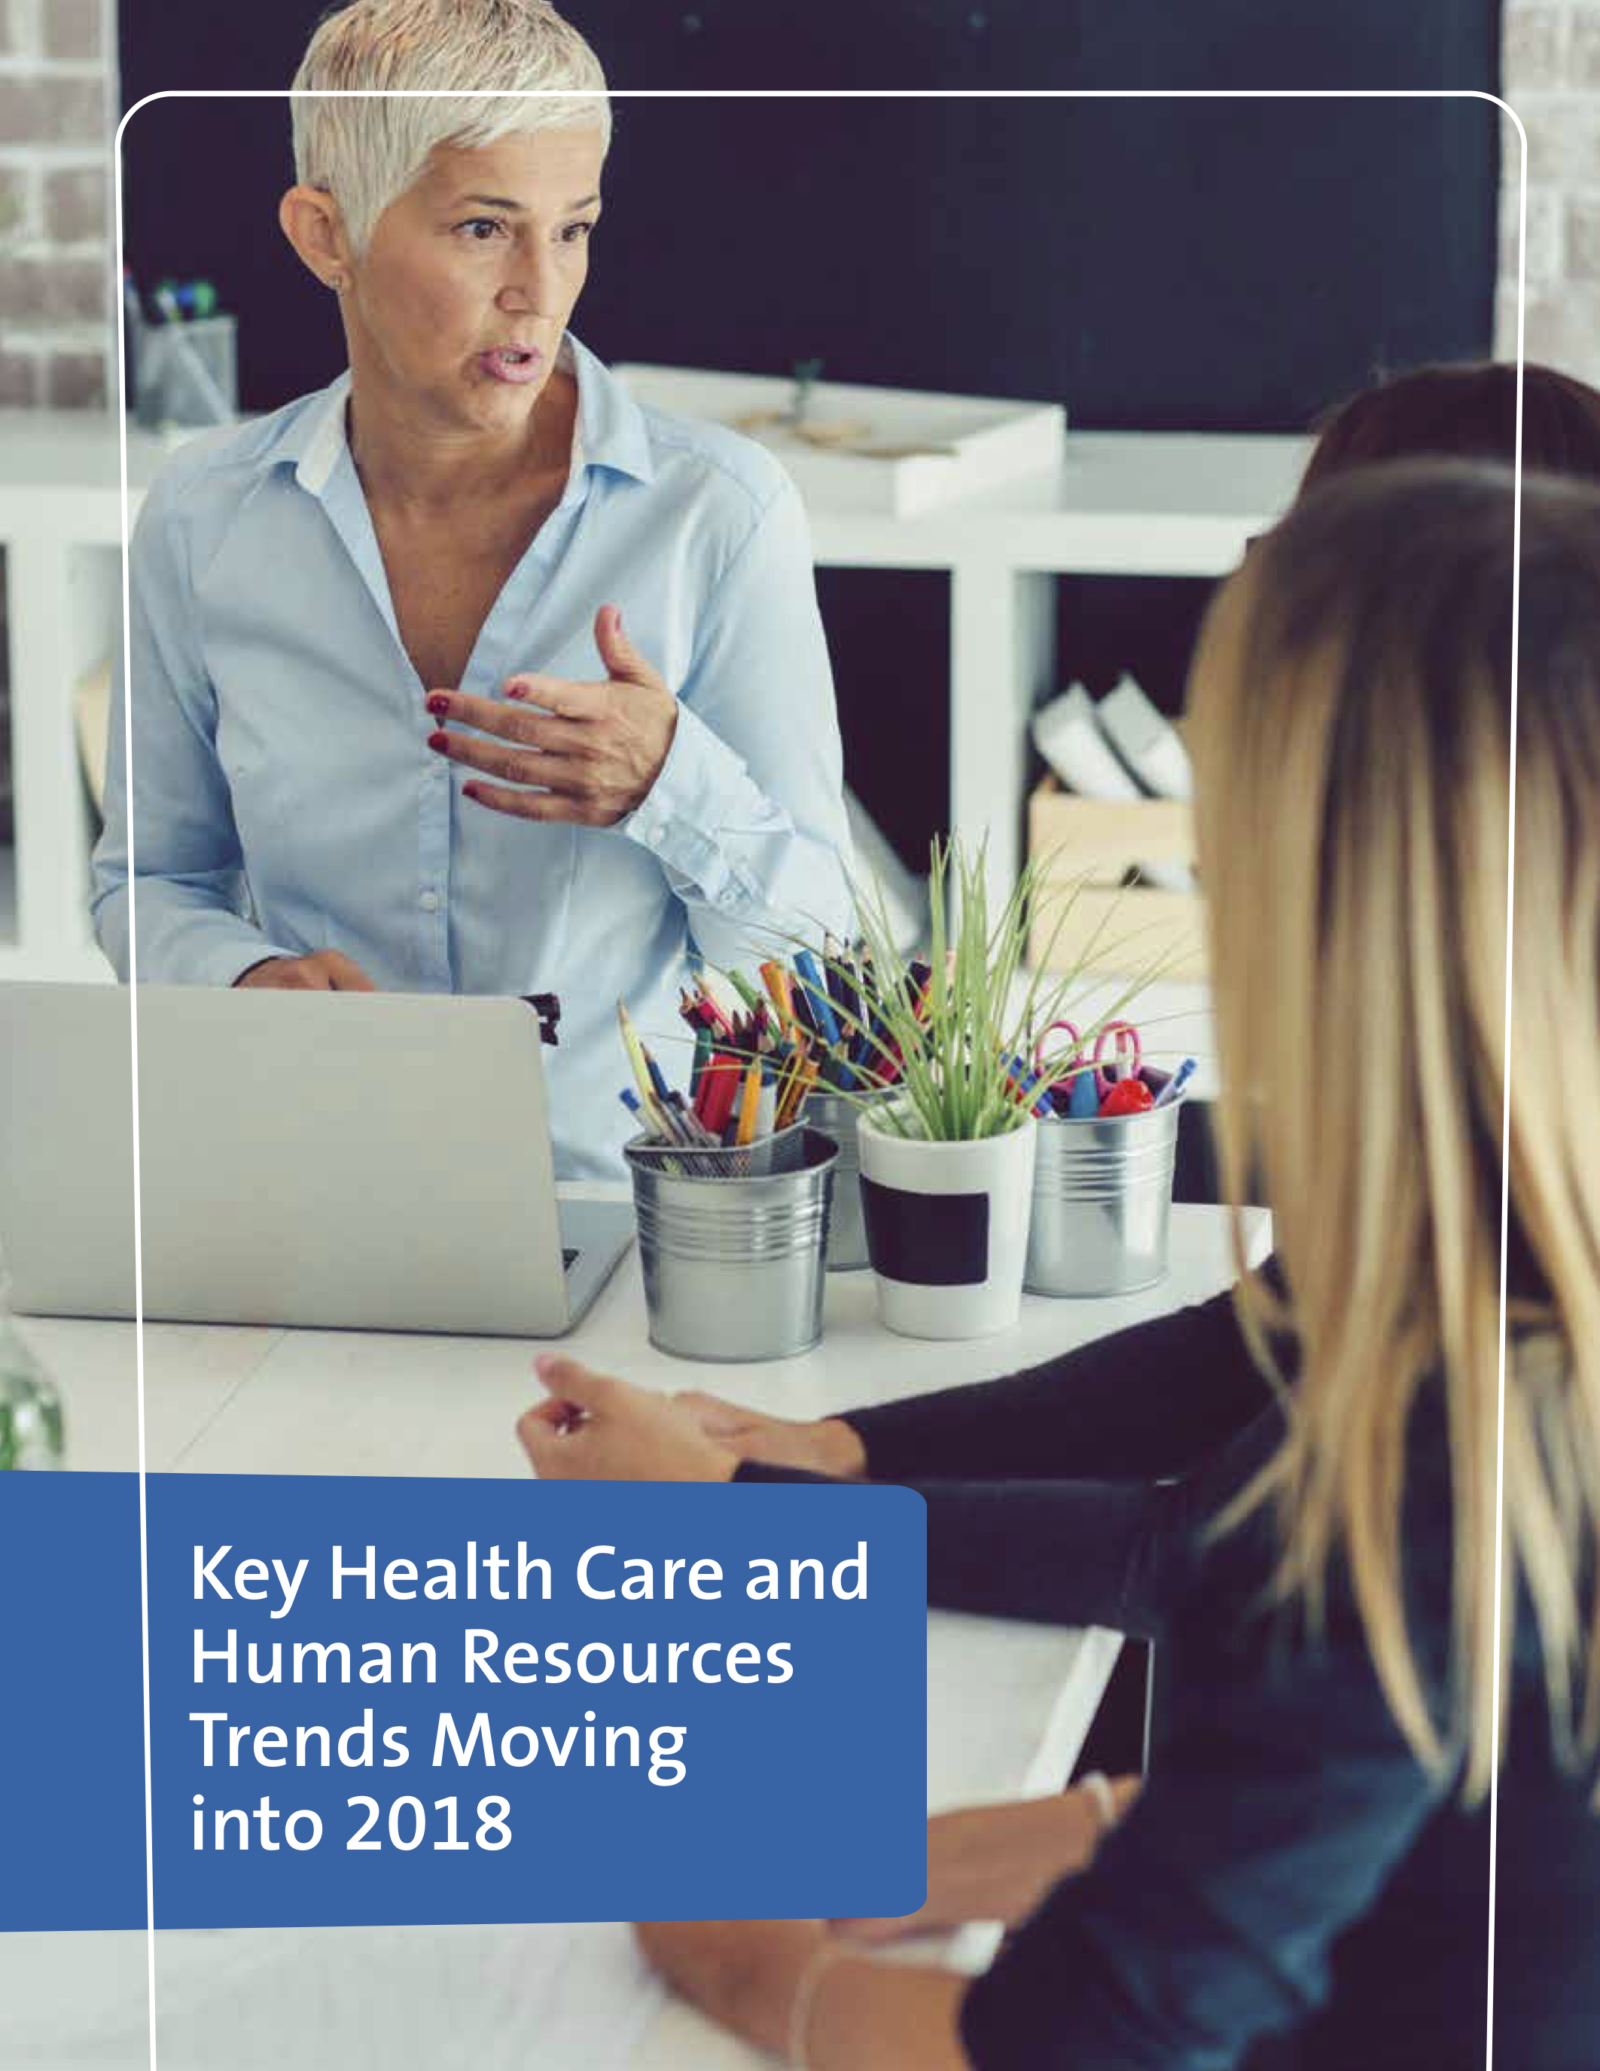 <p><em>The Benefits Guide</em> has long served as a go-to resource for employers and HR representatives looking to understand the health care benefits they offer their employees. This asset actually doubled down on a 2016 infographic we had created overviewing some of the then-rising trends in health insurance. It was one of the top-performing pieces of content we created that year, sparking much discussion and many follow-up questions. So it was a no-brainer to create a more thorough explanation of the same trends and continue to forecast them into 2017.</p>